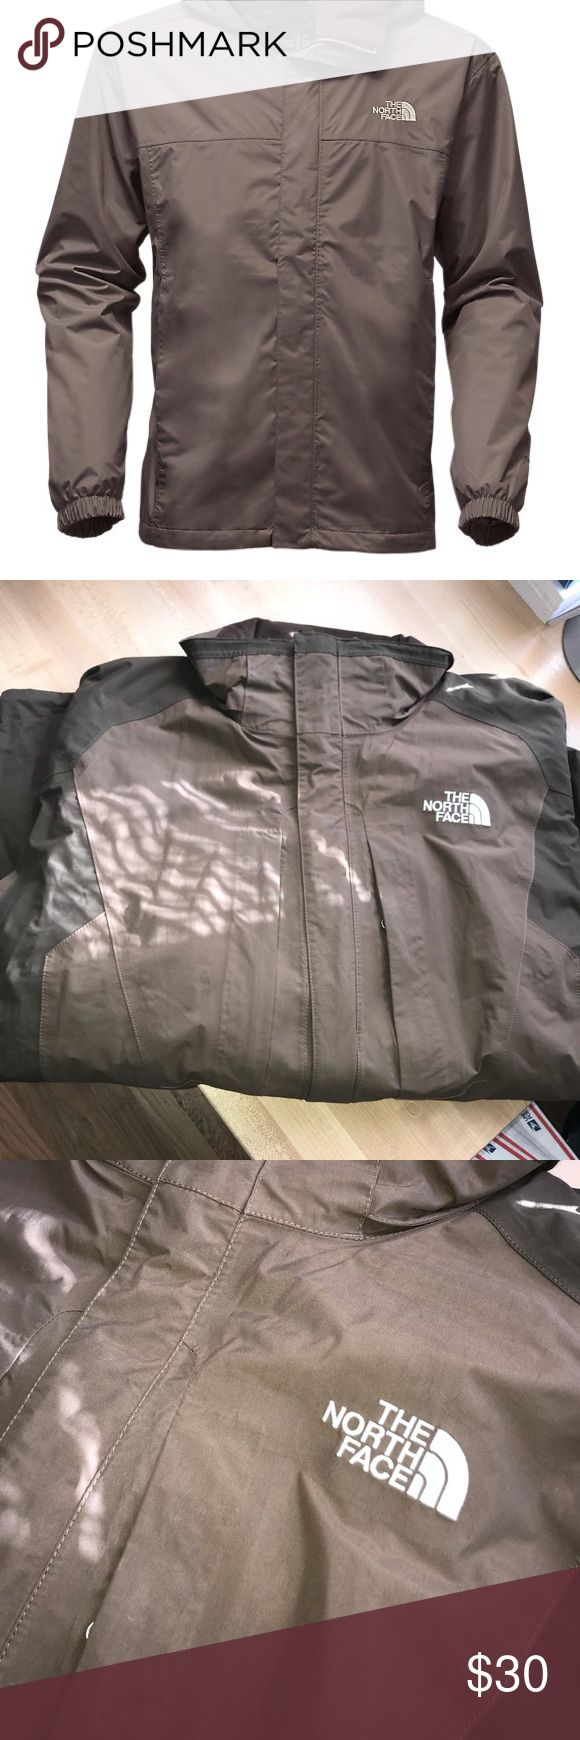 North Face Jacket Brown XL Nice looking jacket  One Hole pictured  Not hooded  and missing the inner lining  Selling for cheap North Face Jackets & Coats Performance Jackets